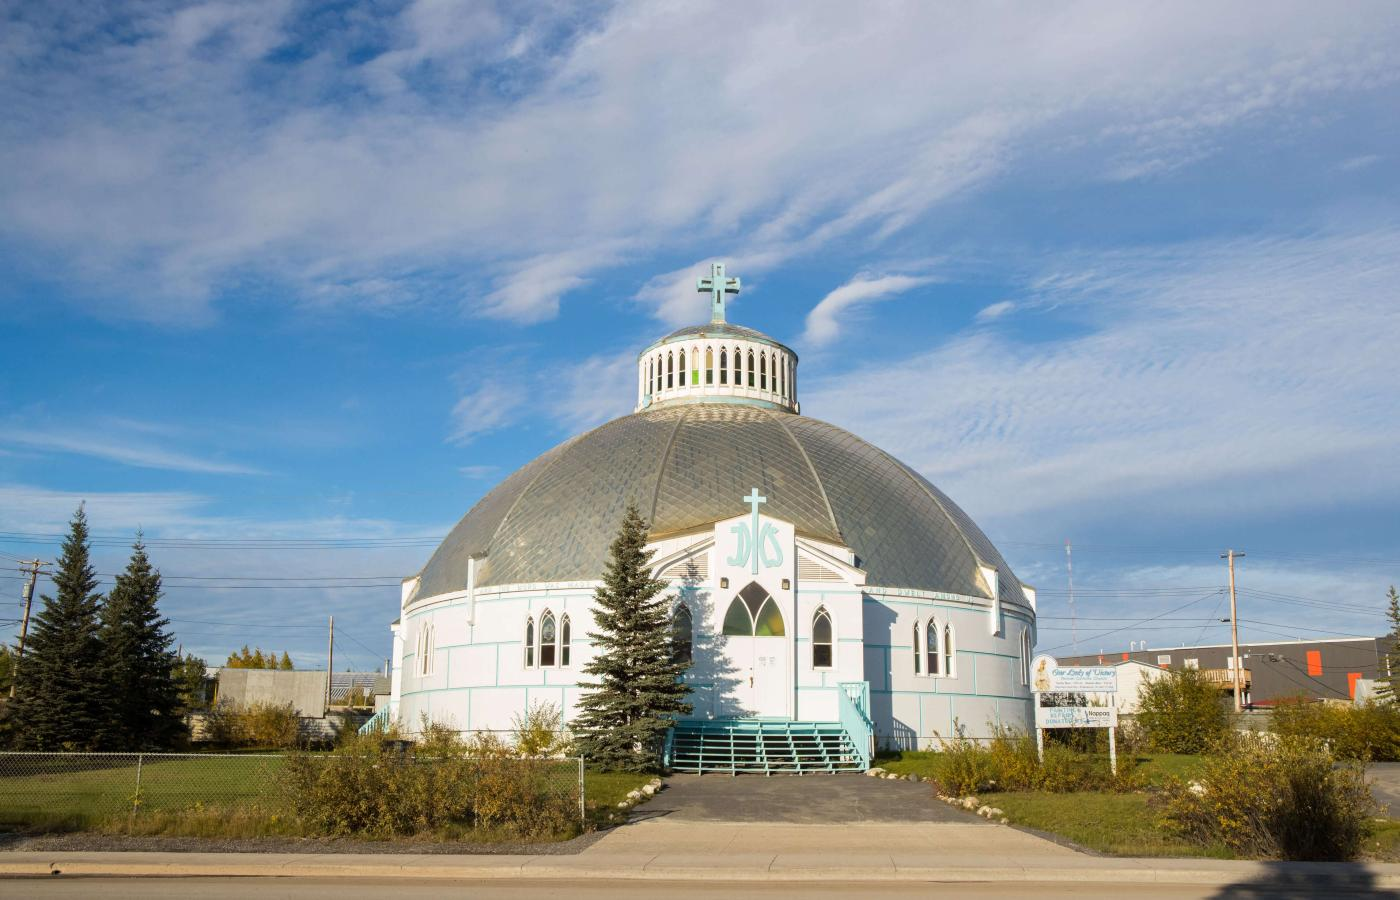 'Our lady of Victory' igloo church in Inuvik